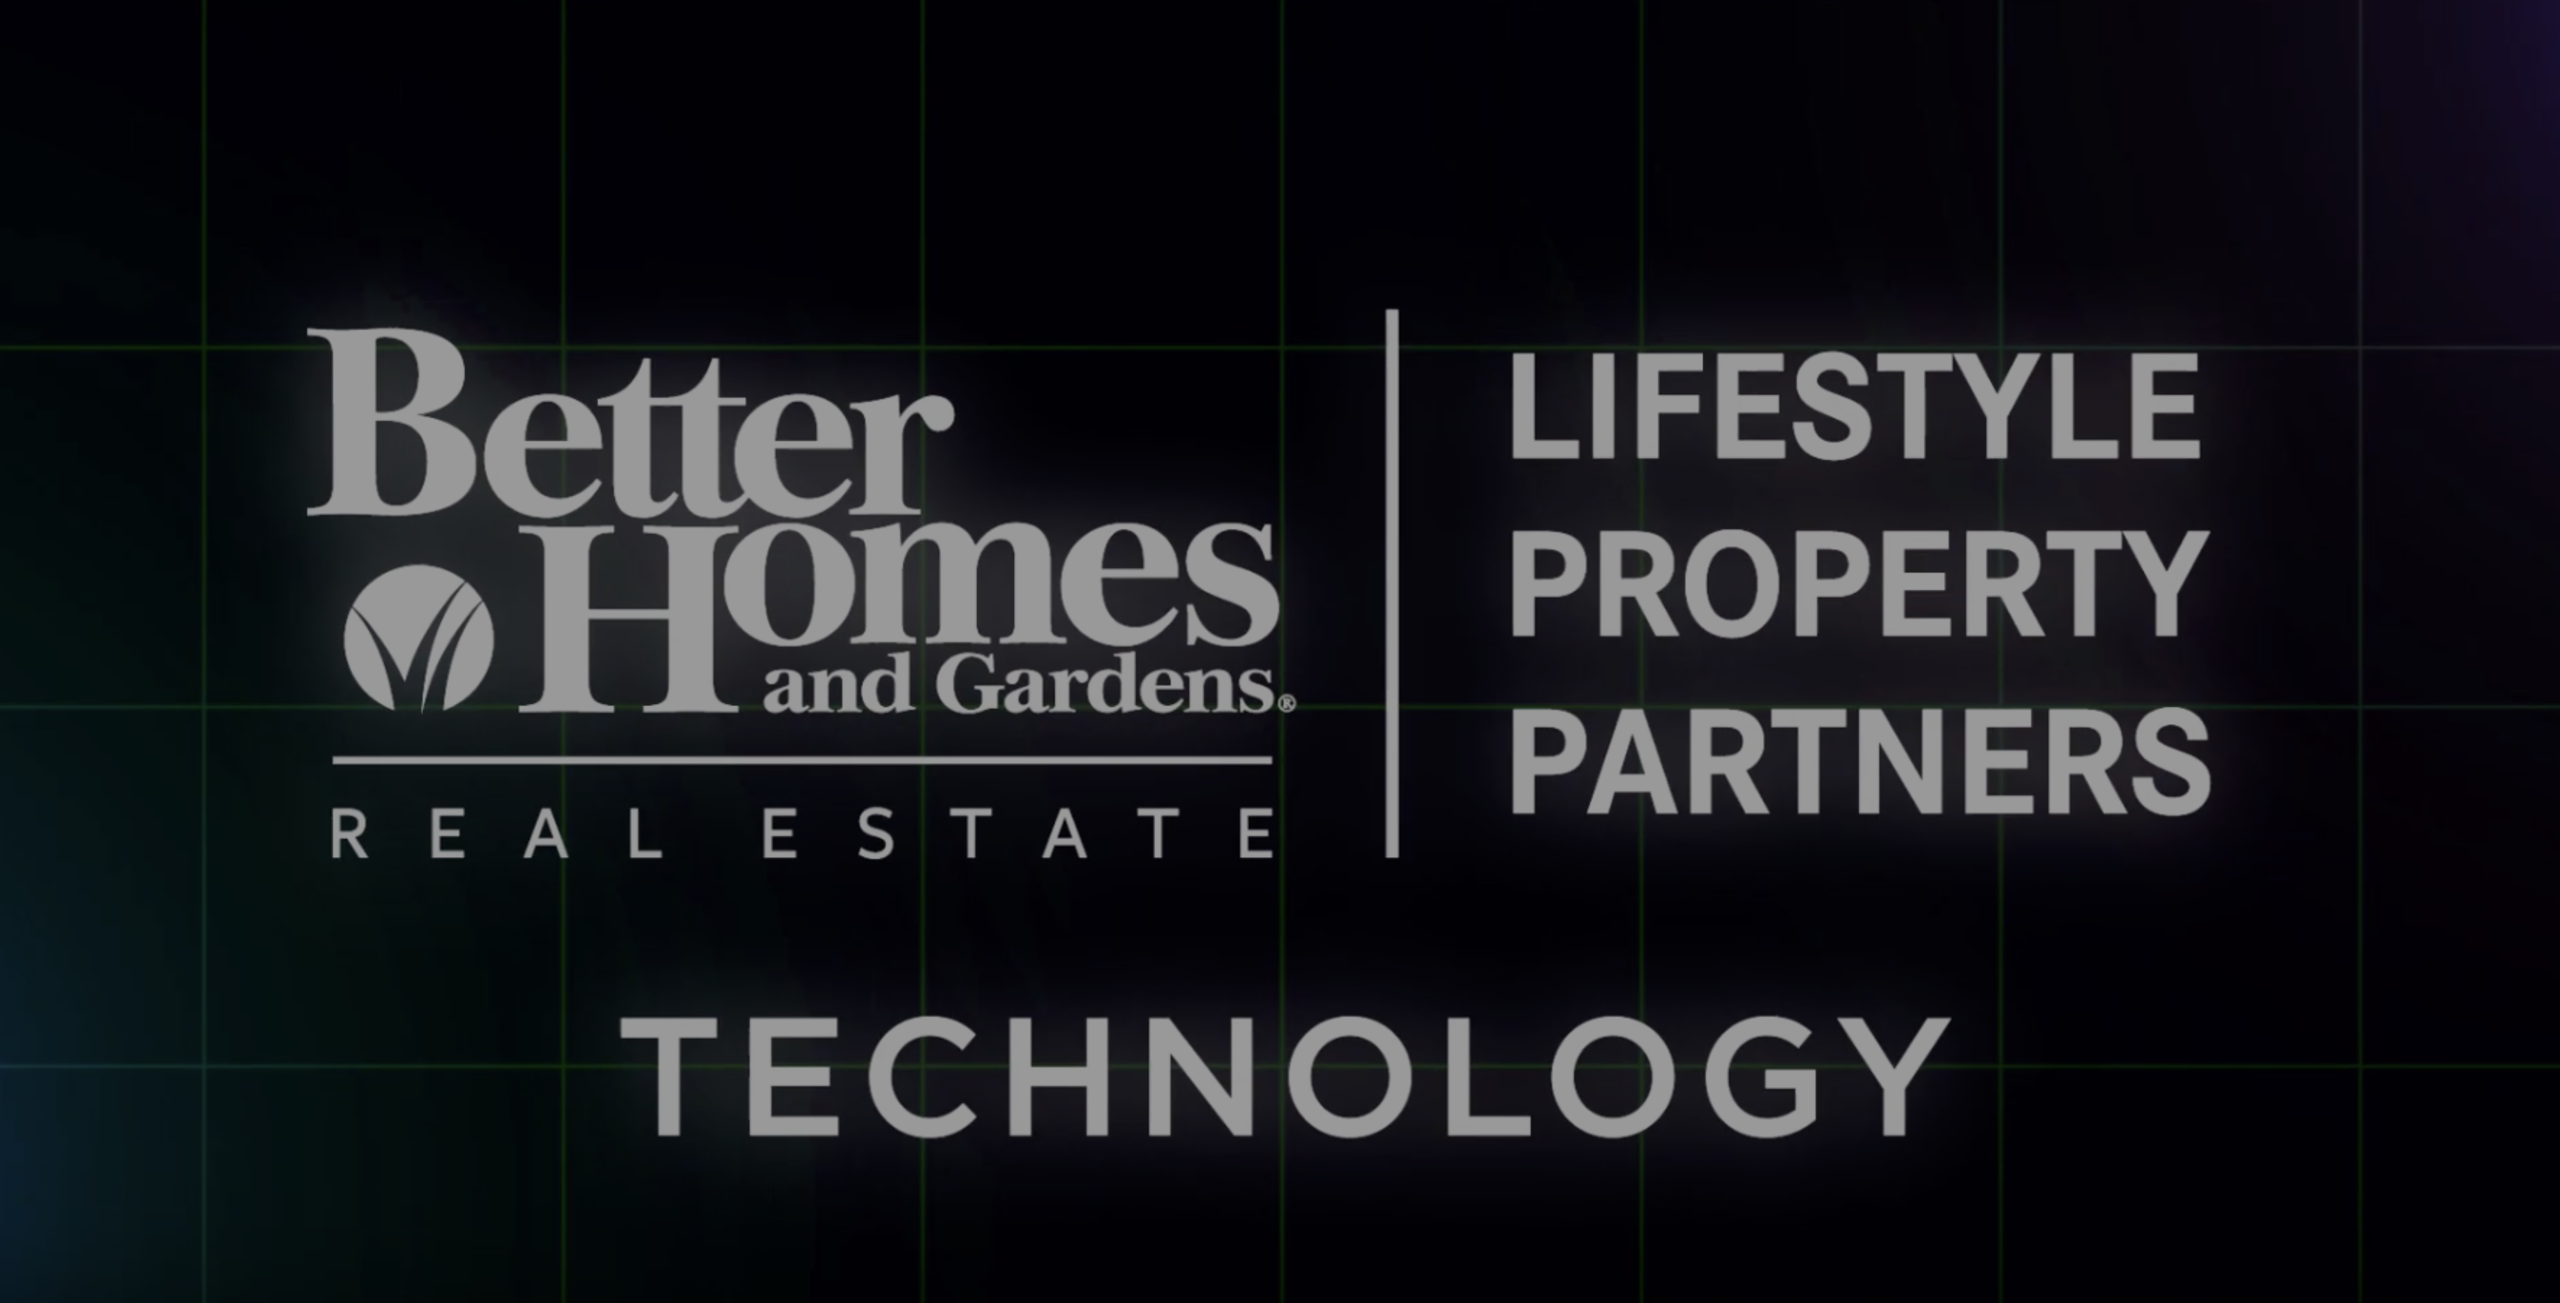 BHGRE Real Estate Technology